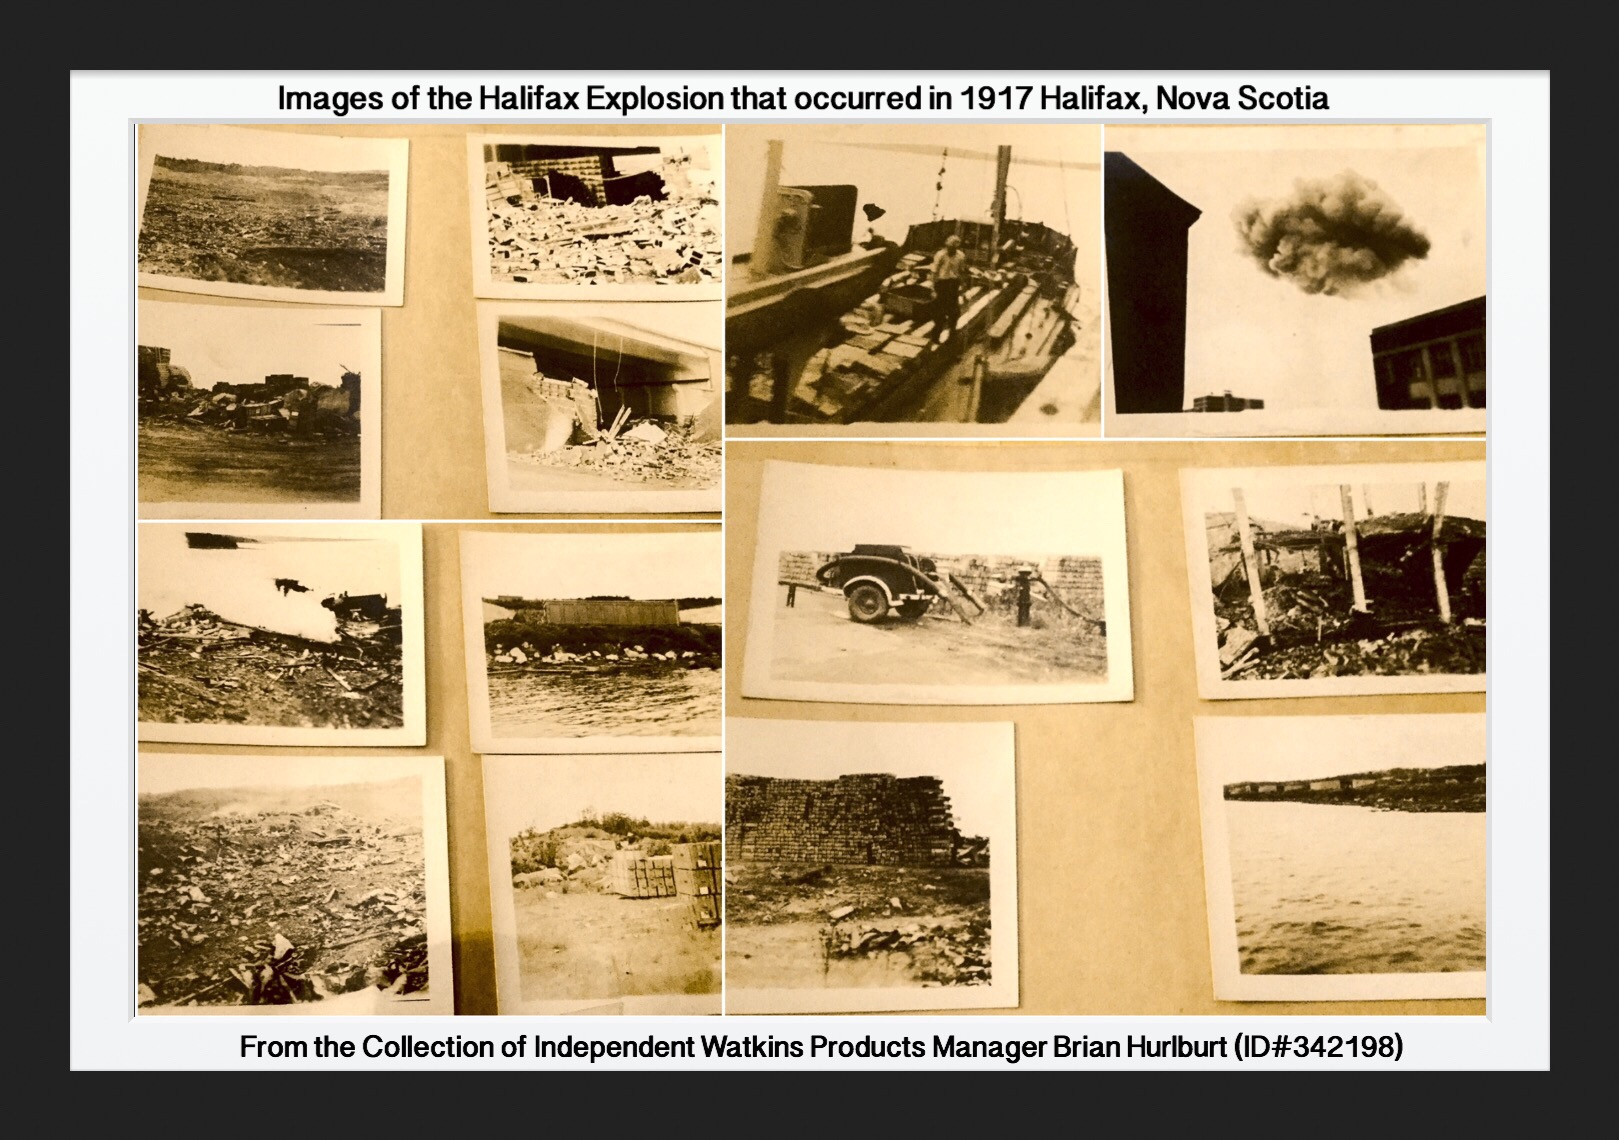 Images of the Halifax Explosion, 1917 Nova Scotia